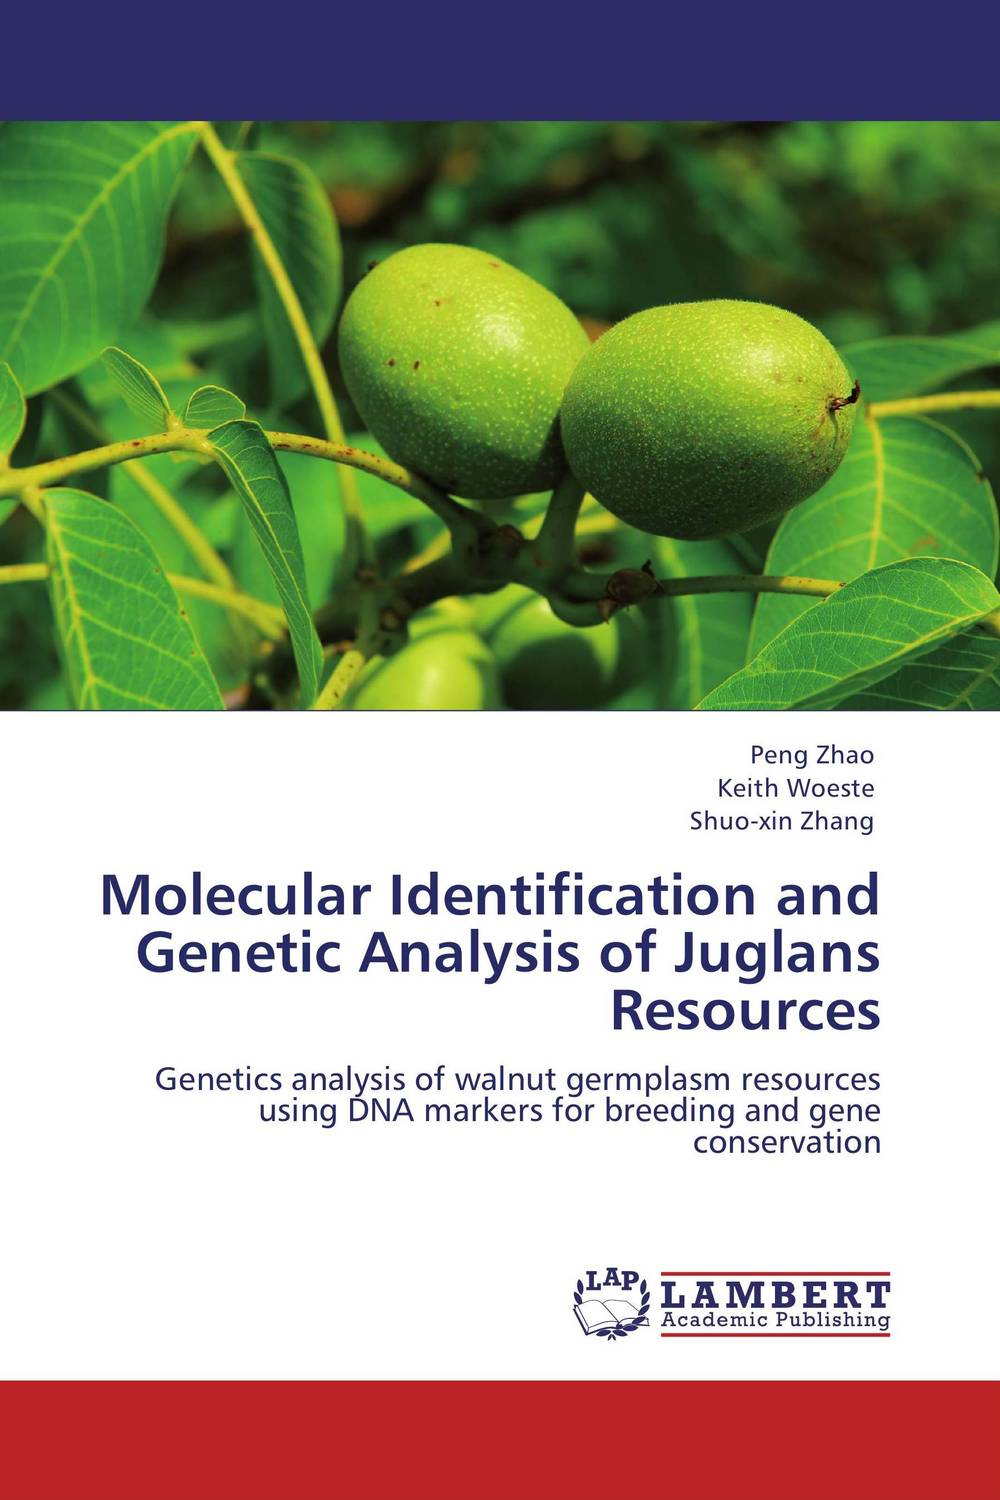 Molecular Identification and Genetic Analysis of Juglans Resources abhijeet singh seema ahuja and devendra jain screening molecular identification enzyme production of thermophiles